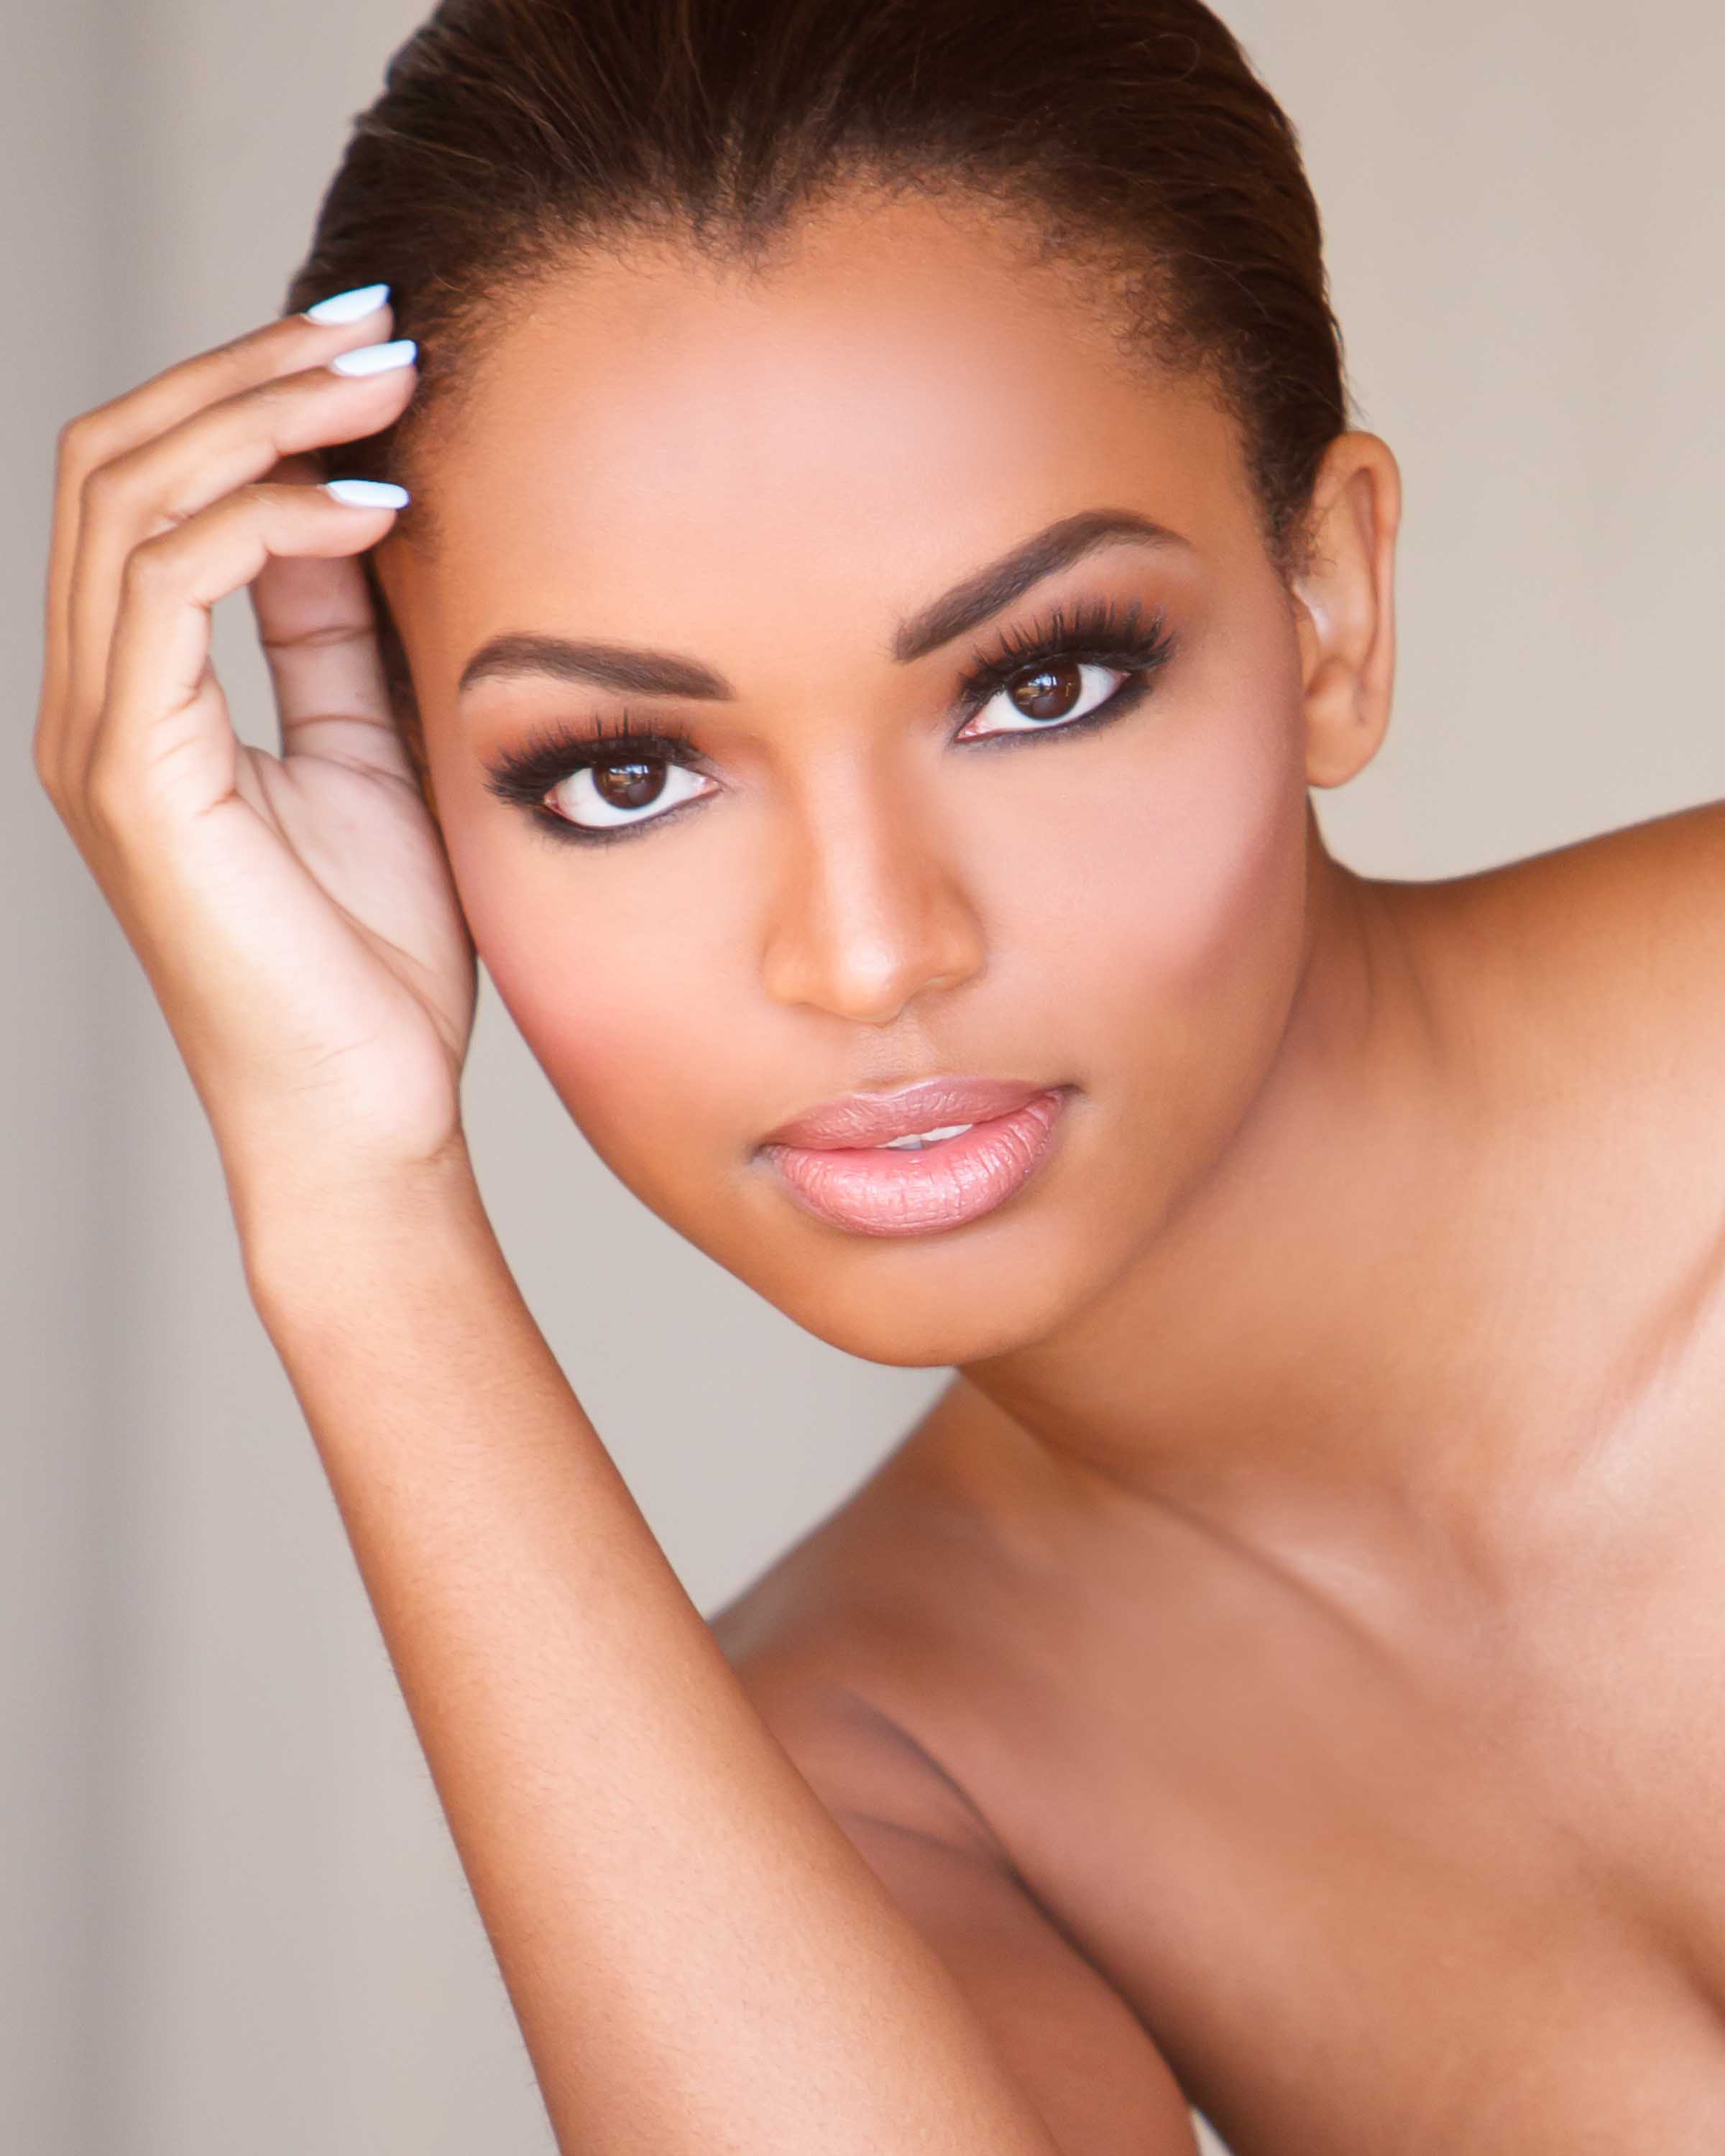 Matt_Boyd_Photography_Asya_Branch_Miss_USA_America_Pageant_Headshot_Meredith_Makeup_Mississippi